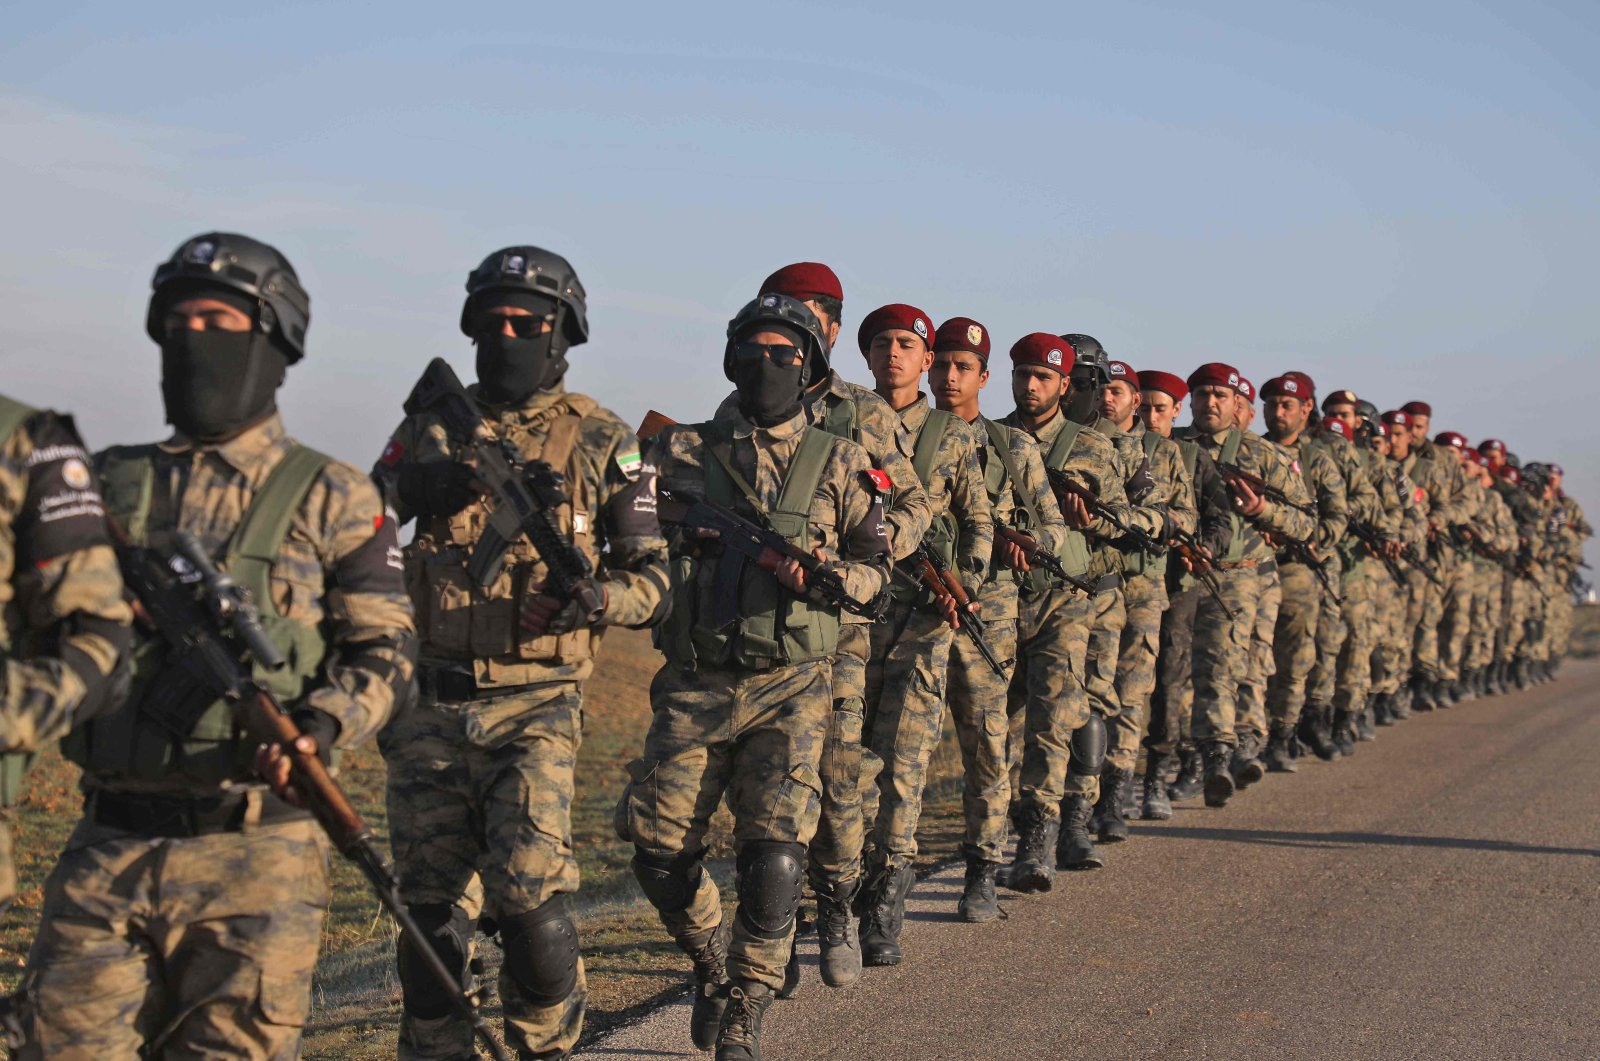 Turkey-backed Syrian National Army (SNA) soldiers take part in a military exercise in Ghandoura, in the countryside northeast of Aleppo, Syria, Jan. 14, 2021. (AFP Photo)